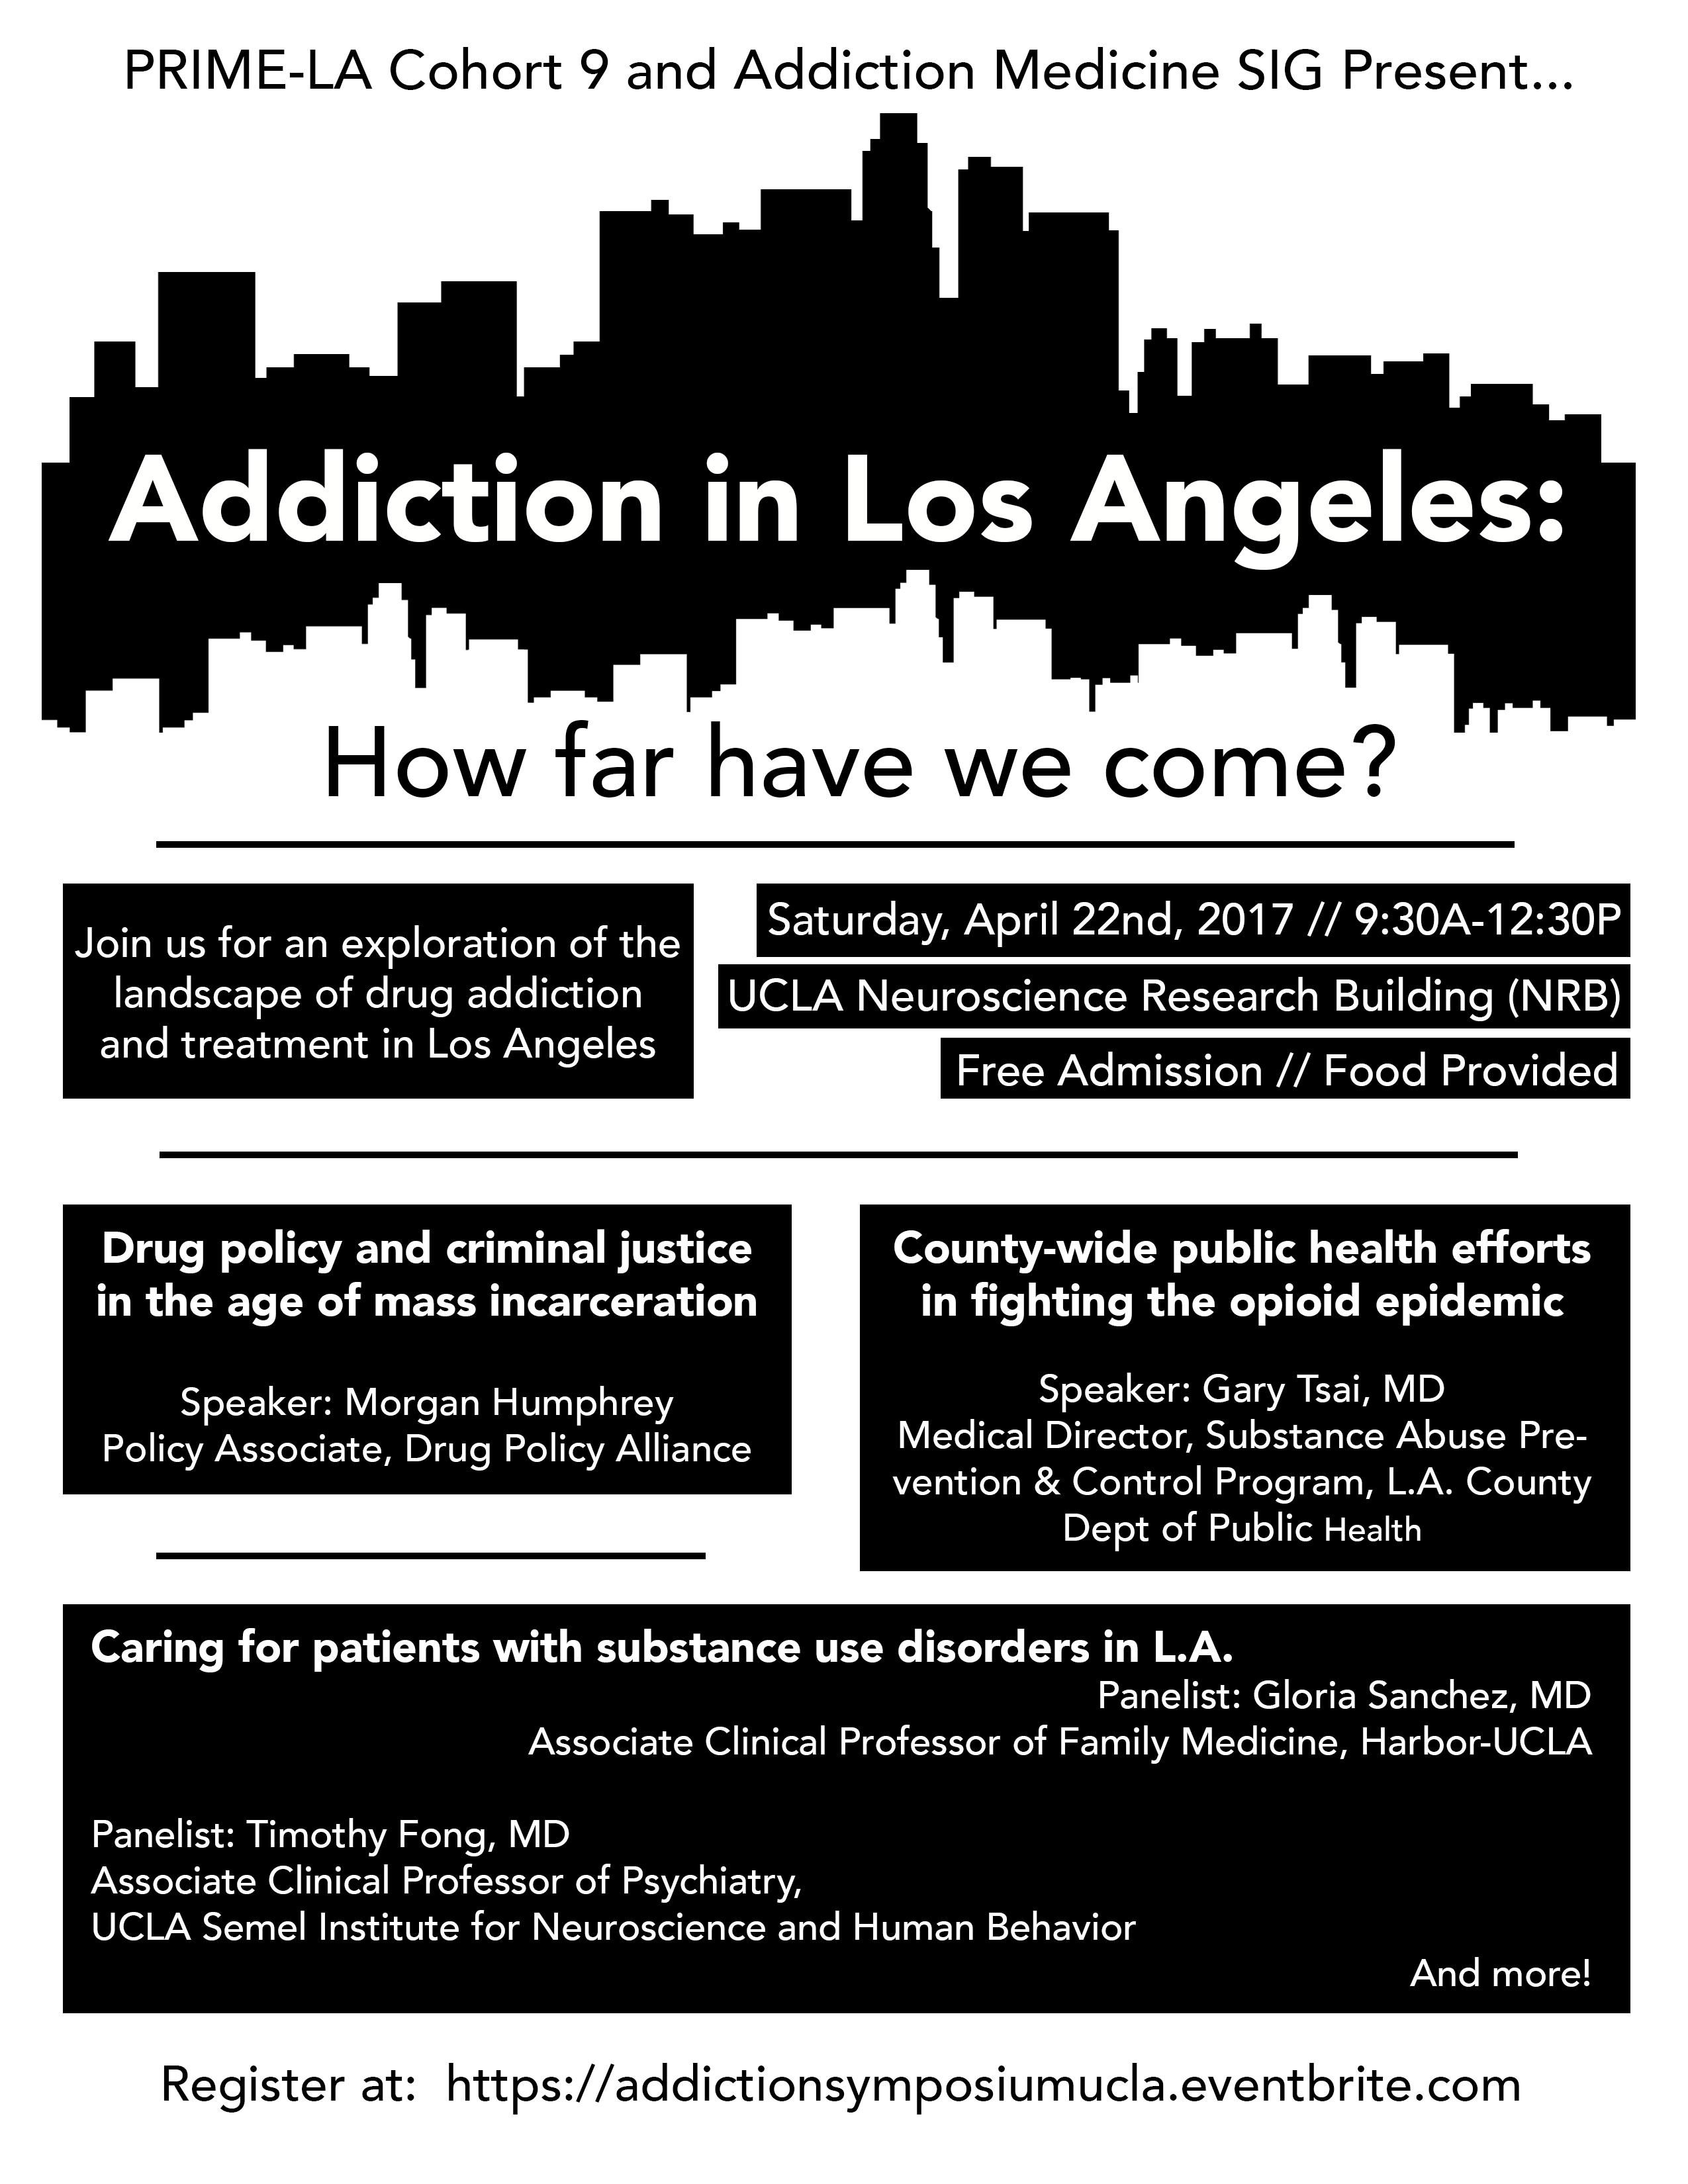 Addiction in Los Angeles: How far have we come?